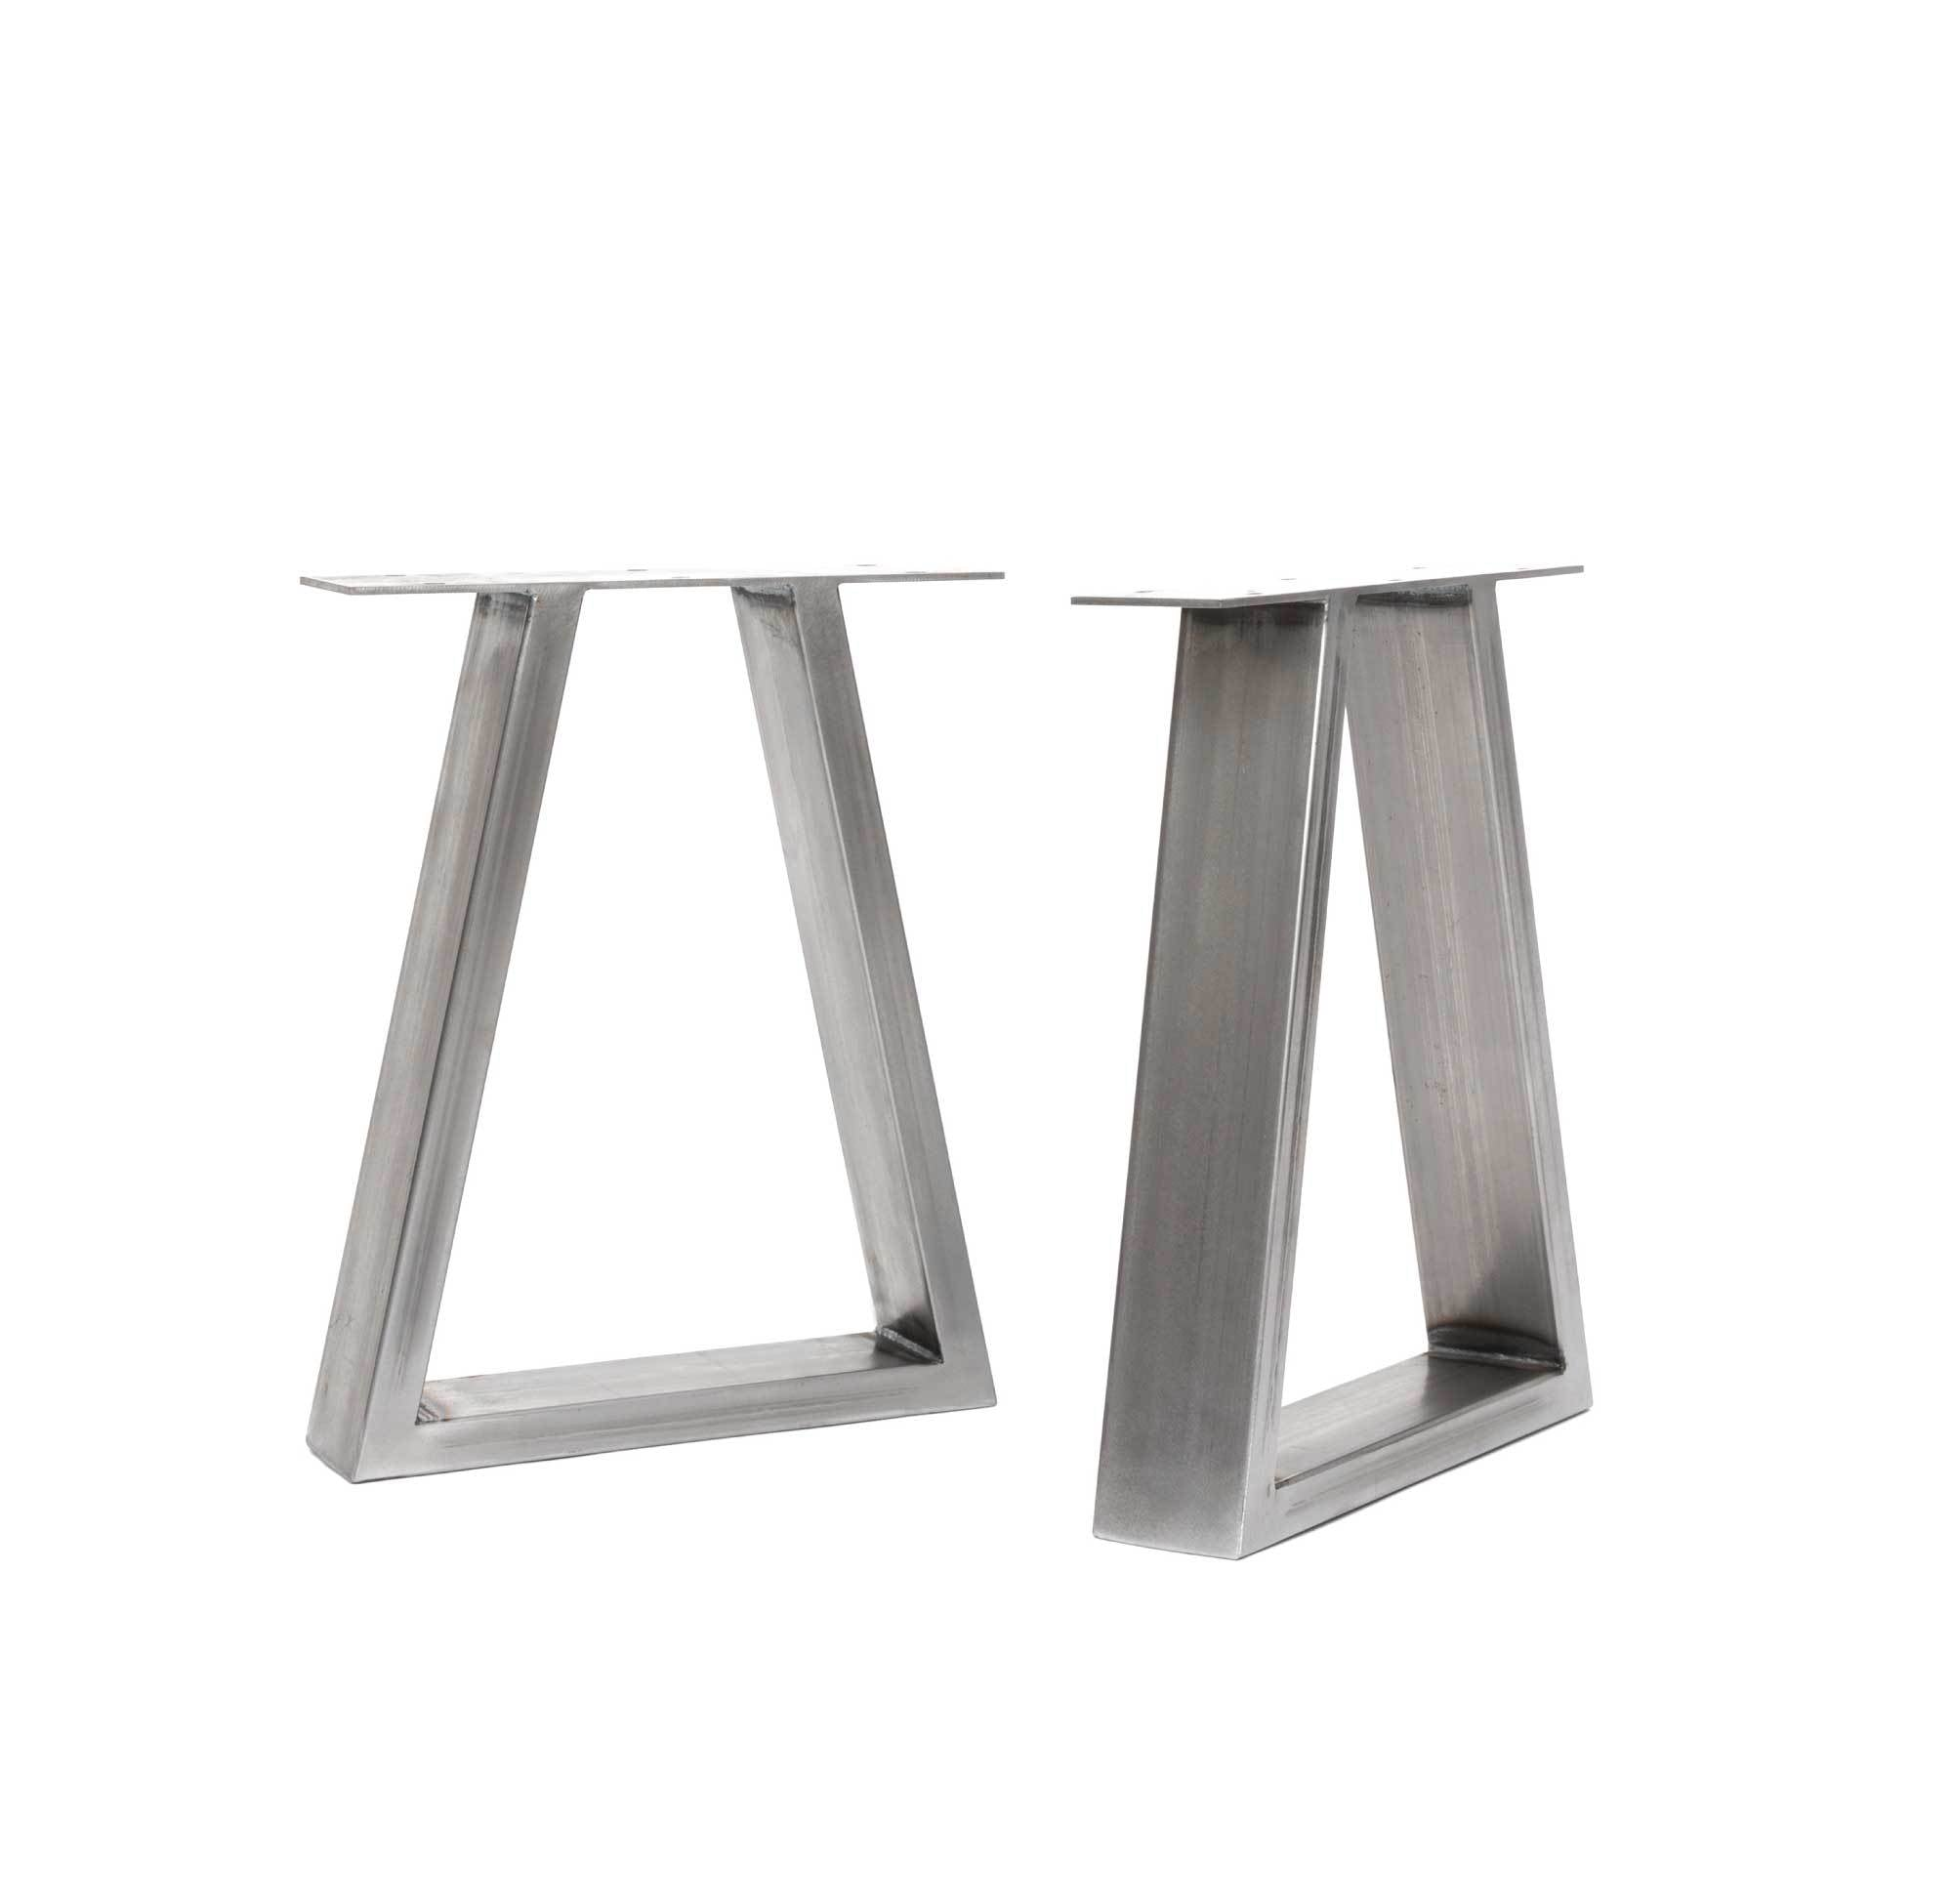 Prime Trapezium Industrial Leg Bench Ends Contract Furniture Store Caraccident5 Cool Chair Designs And Ideas Caraccident5Info